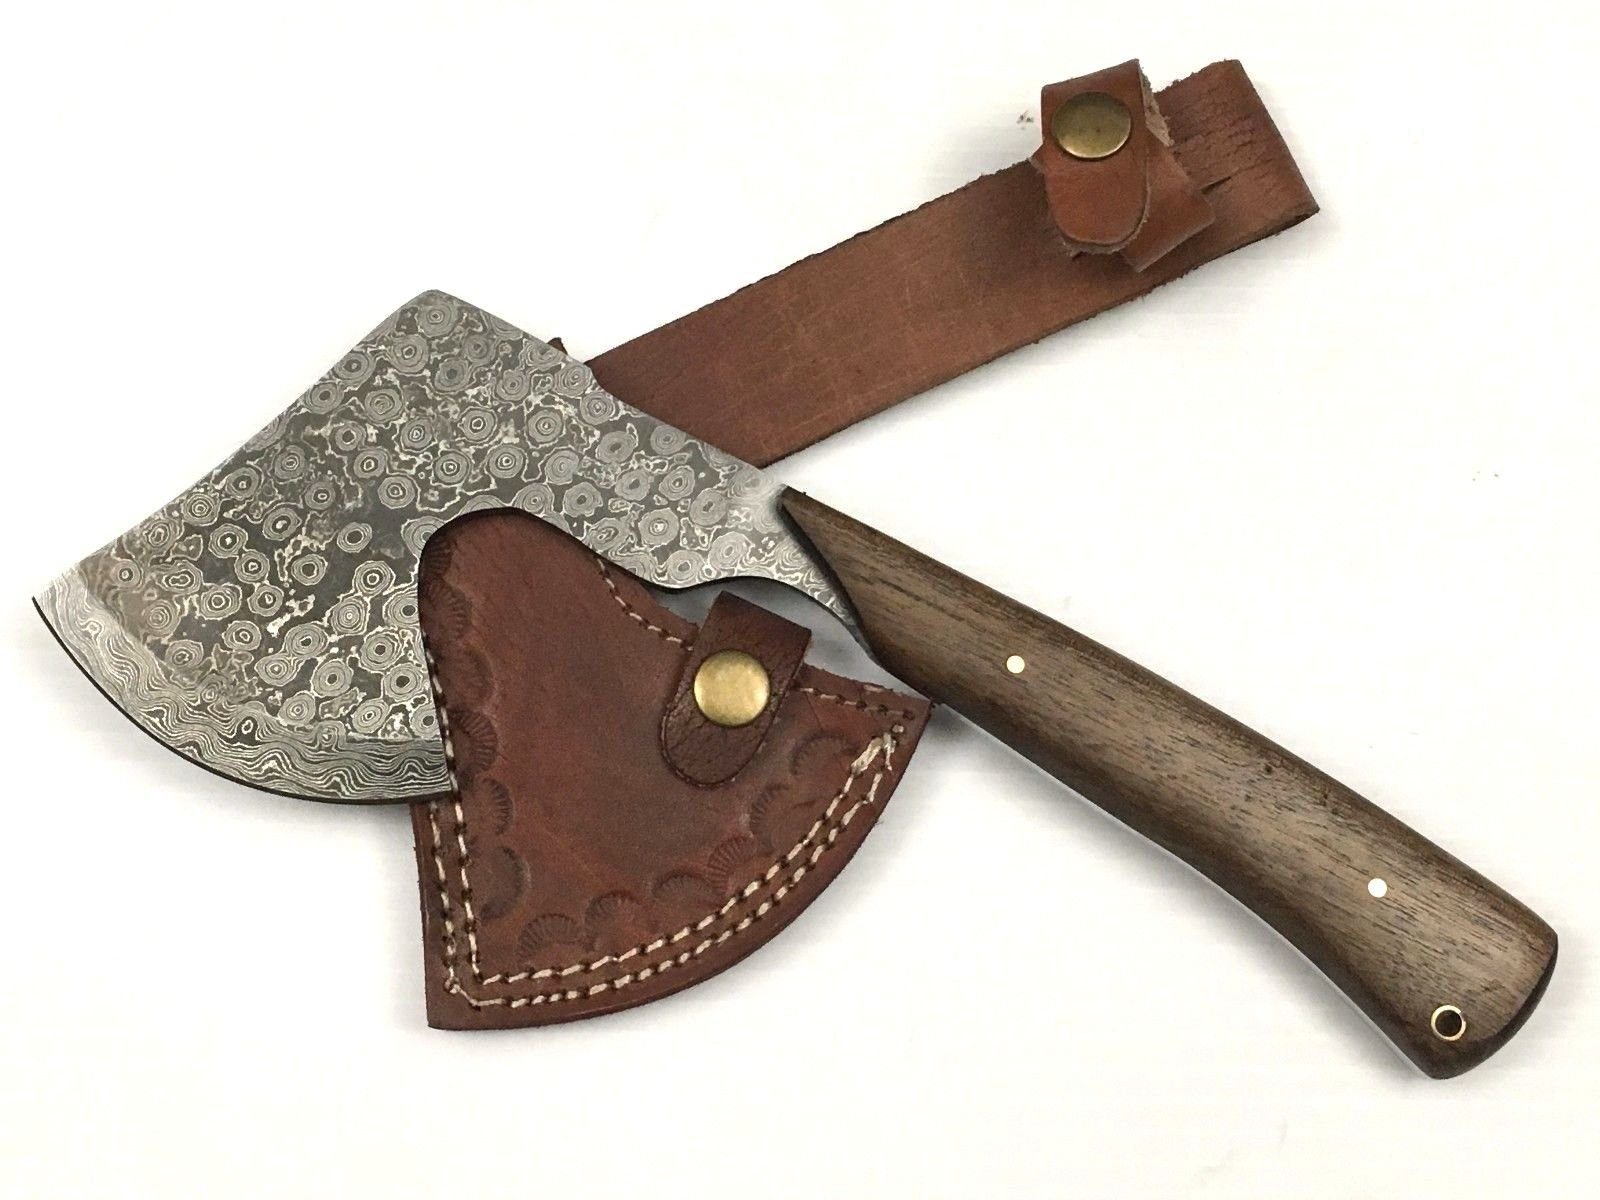 ASH BLADES Ash d015 damascus steel handmade hunting knife axe 11''